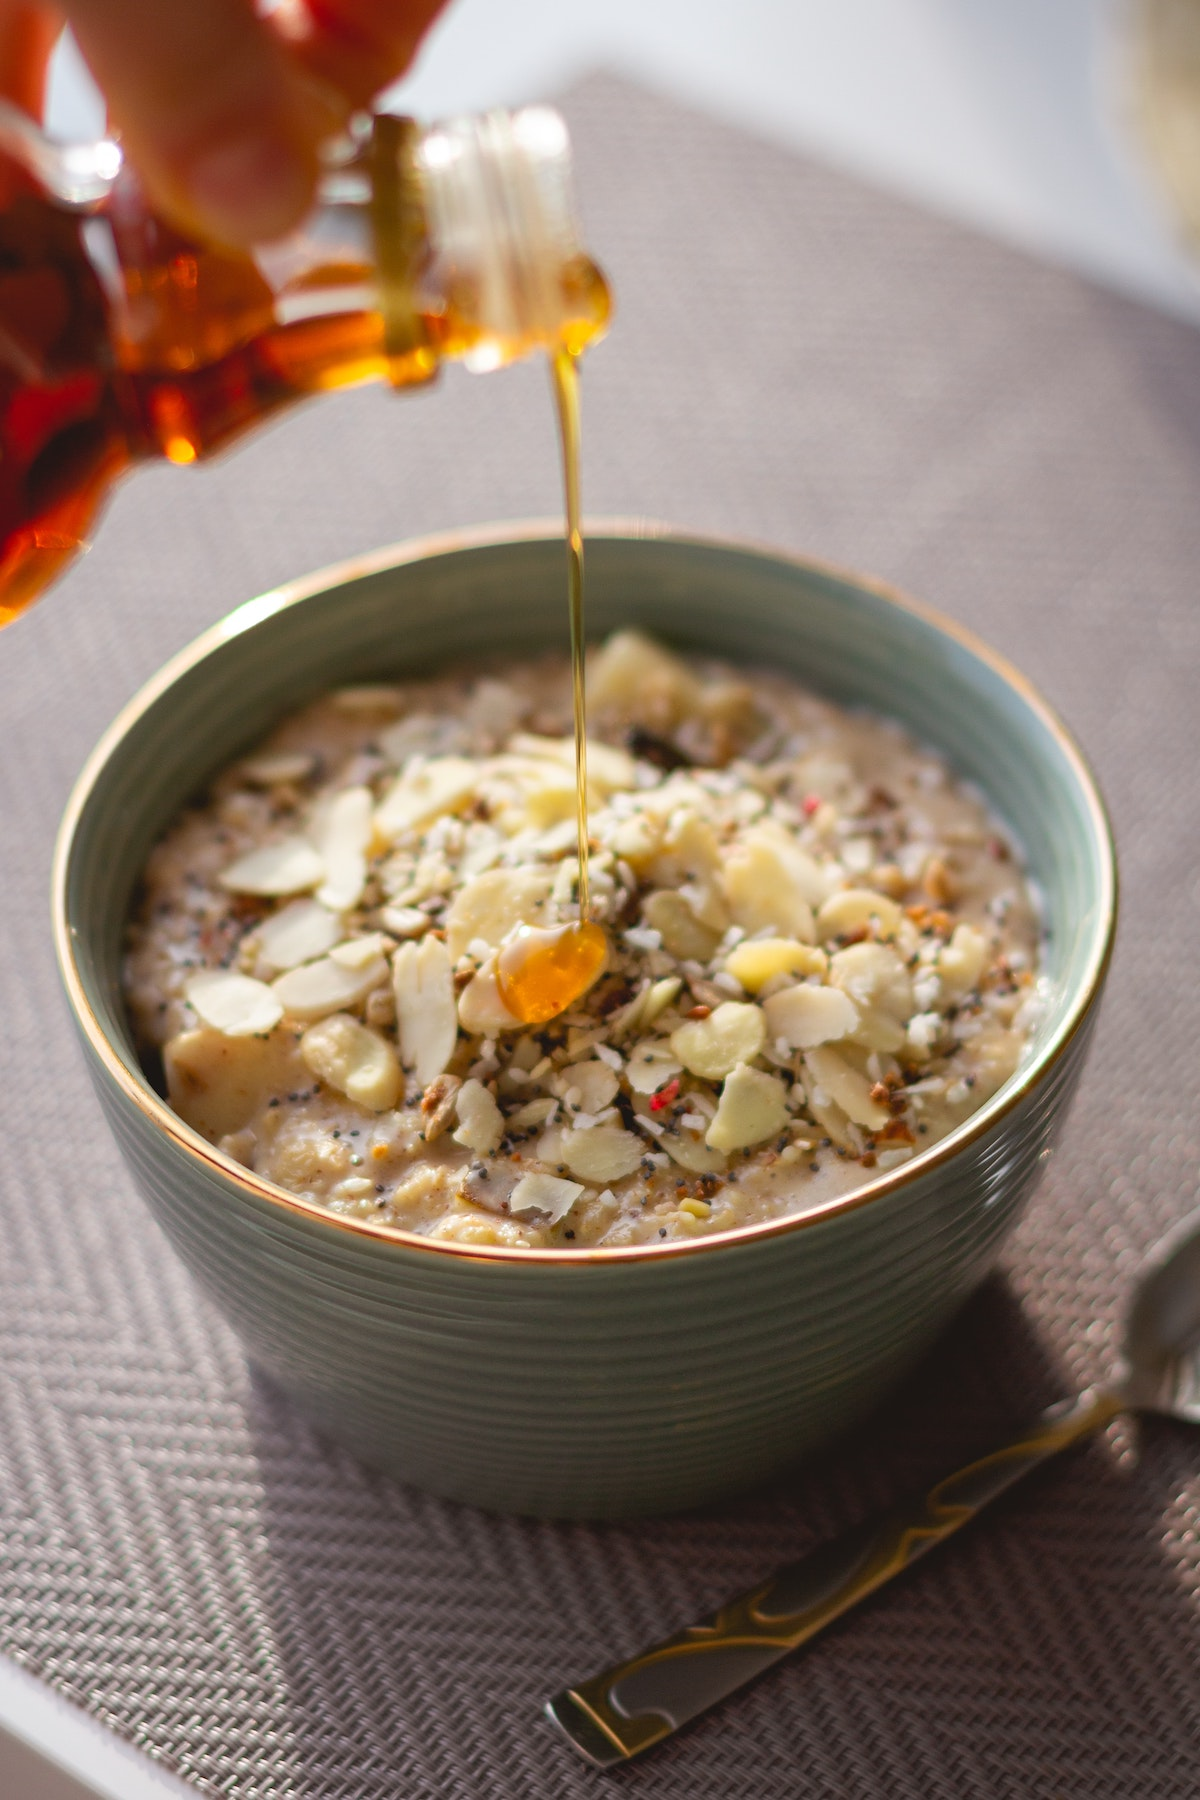 Oatmeal in a bowl with some extra nuts and grains added and maple syrup being poured over.